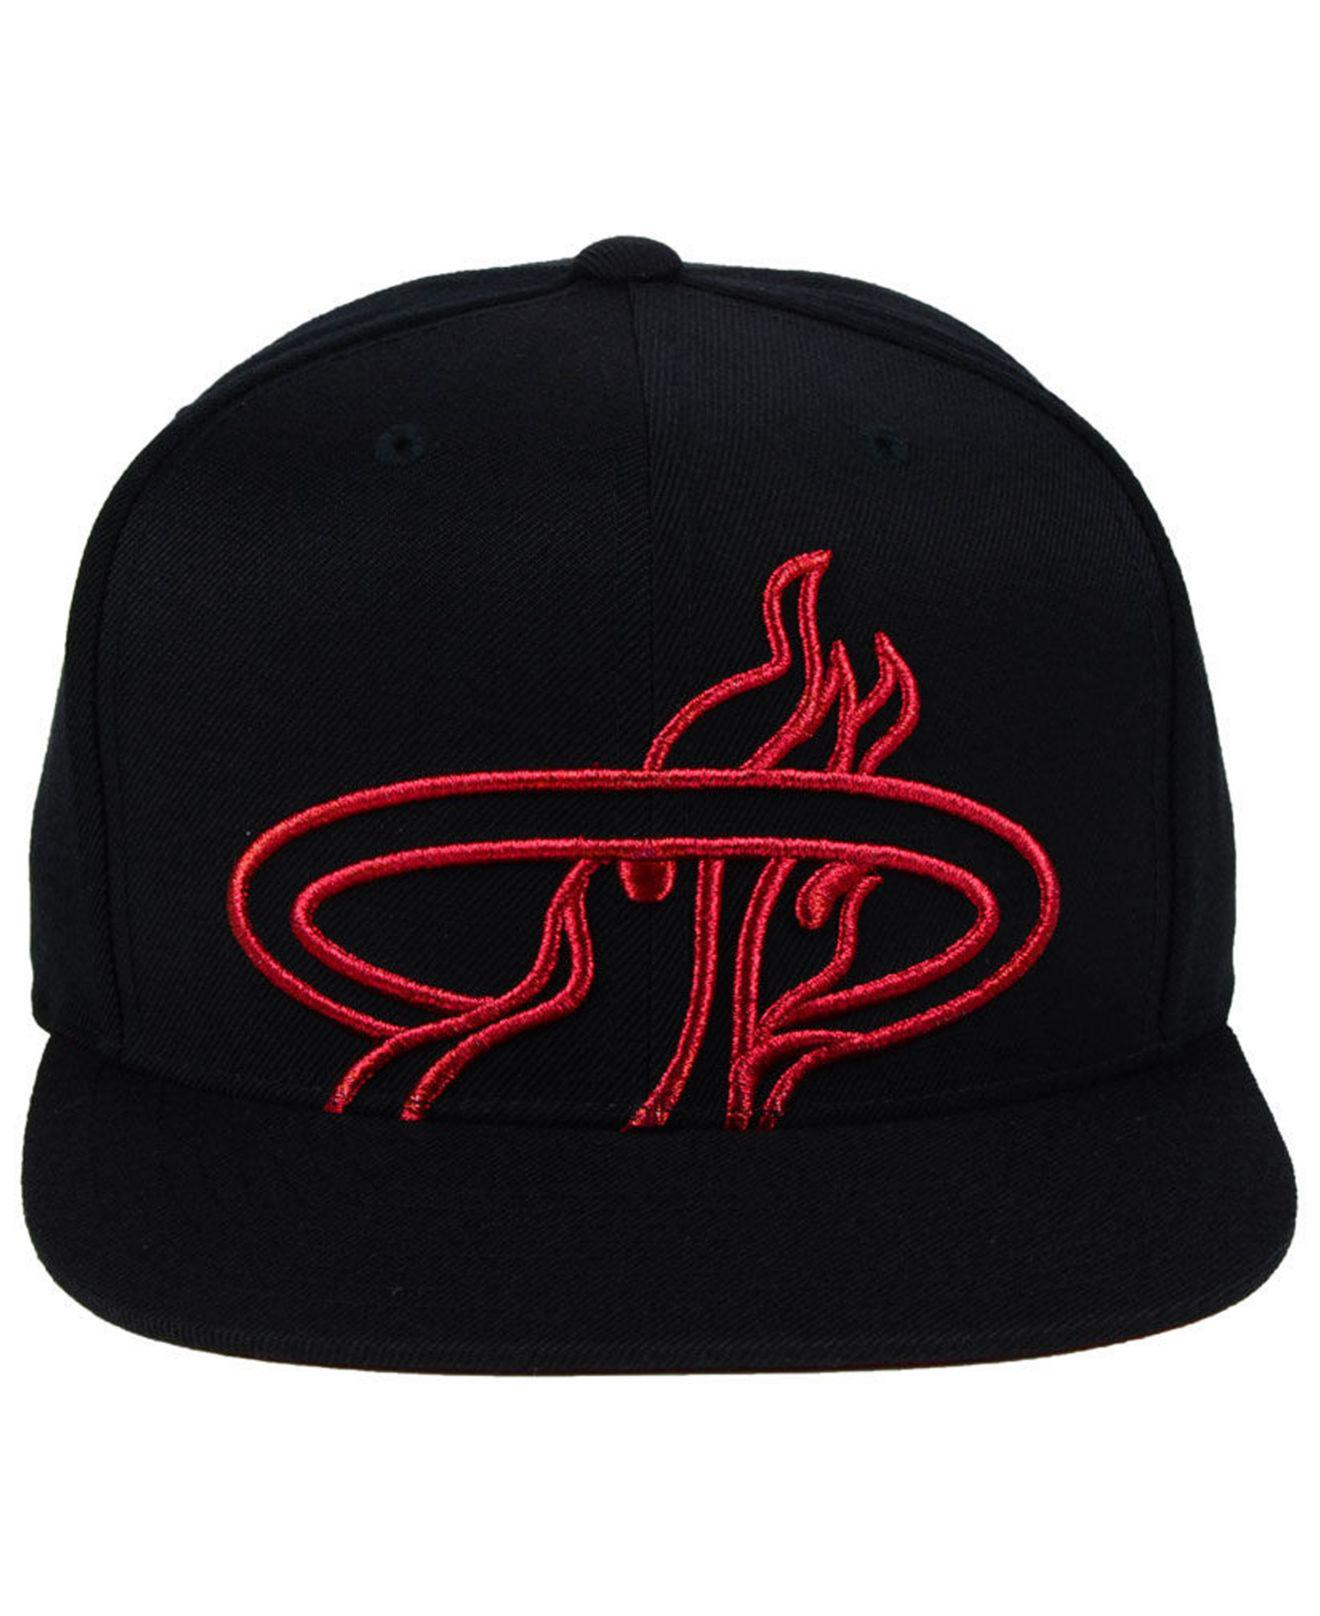 huge discount 88687 d7718 ... coupon for detailing 6c175 46c36 lyst mitchell ness miami heat metallic  cropped snapback cap in black